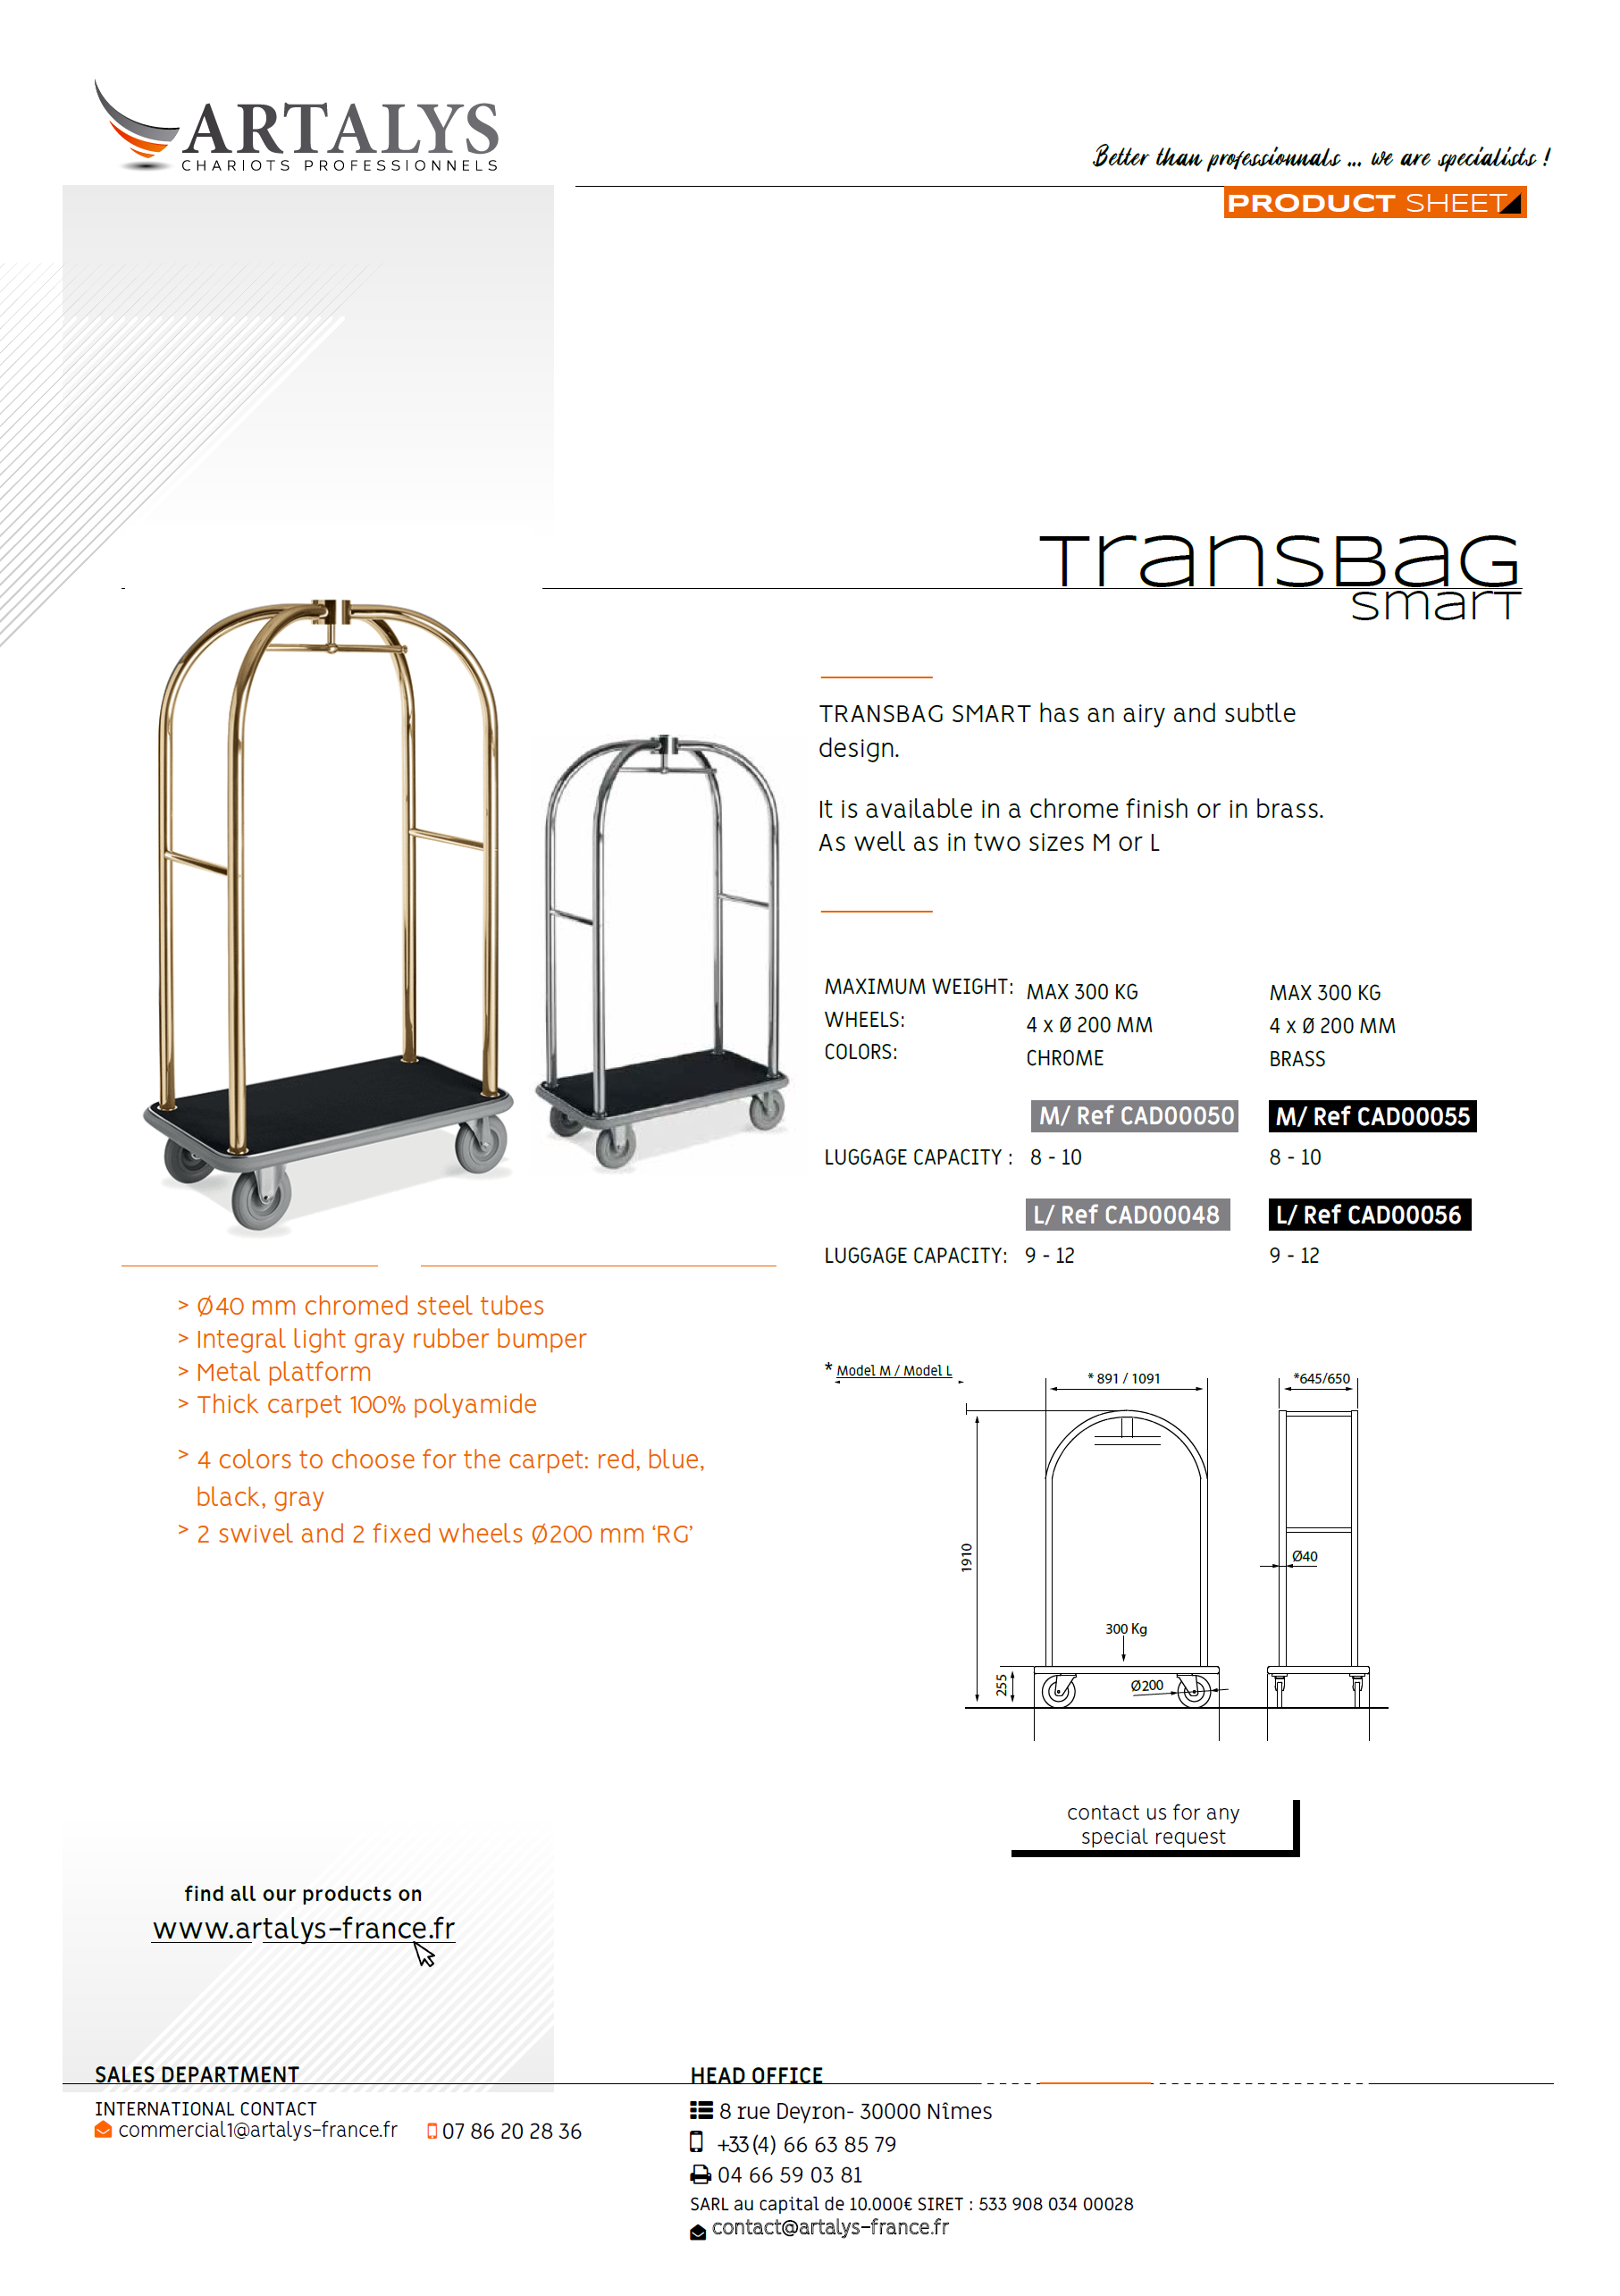 Product sheet of our Transbag Smart luggage trolley